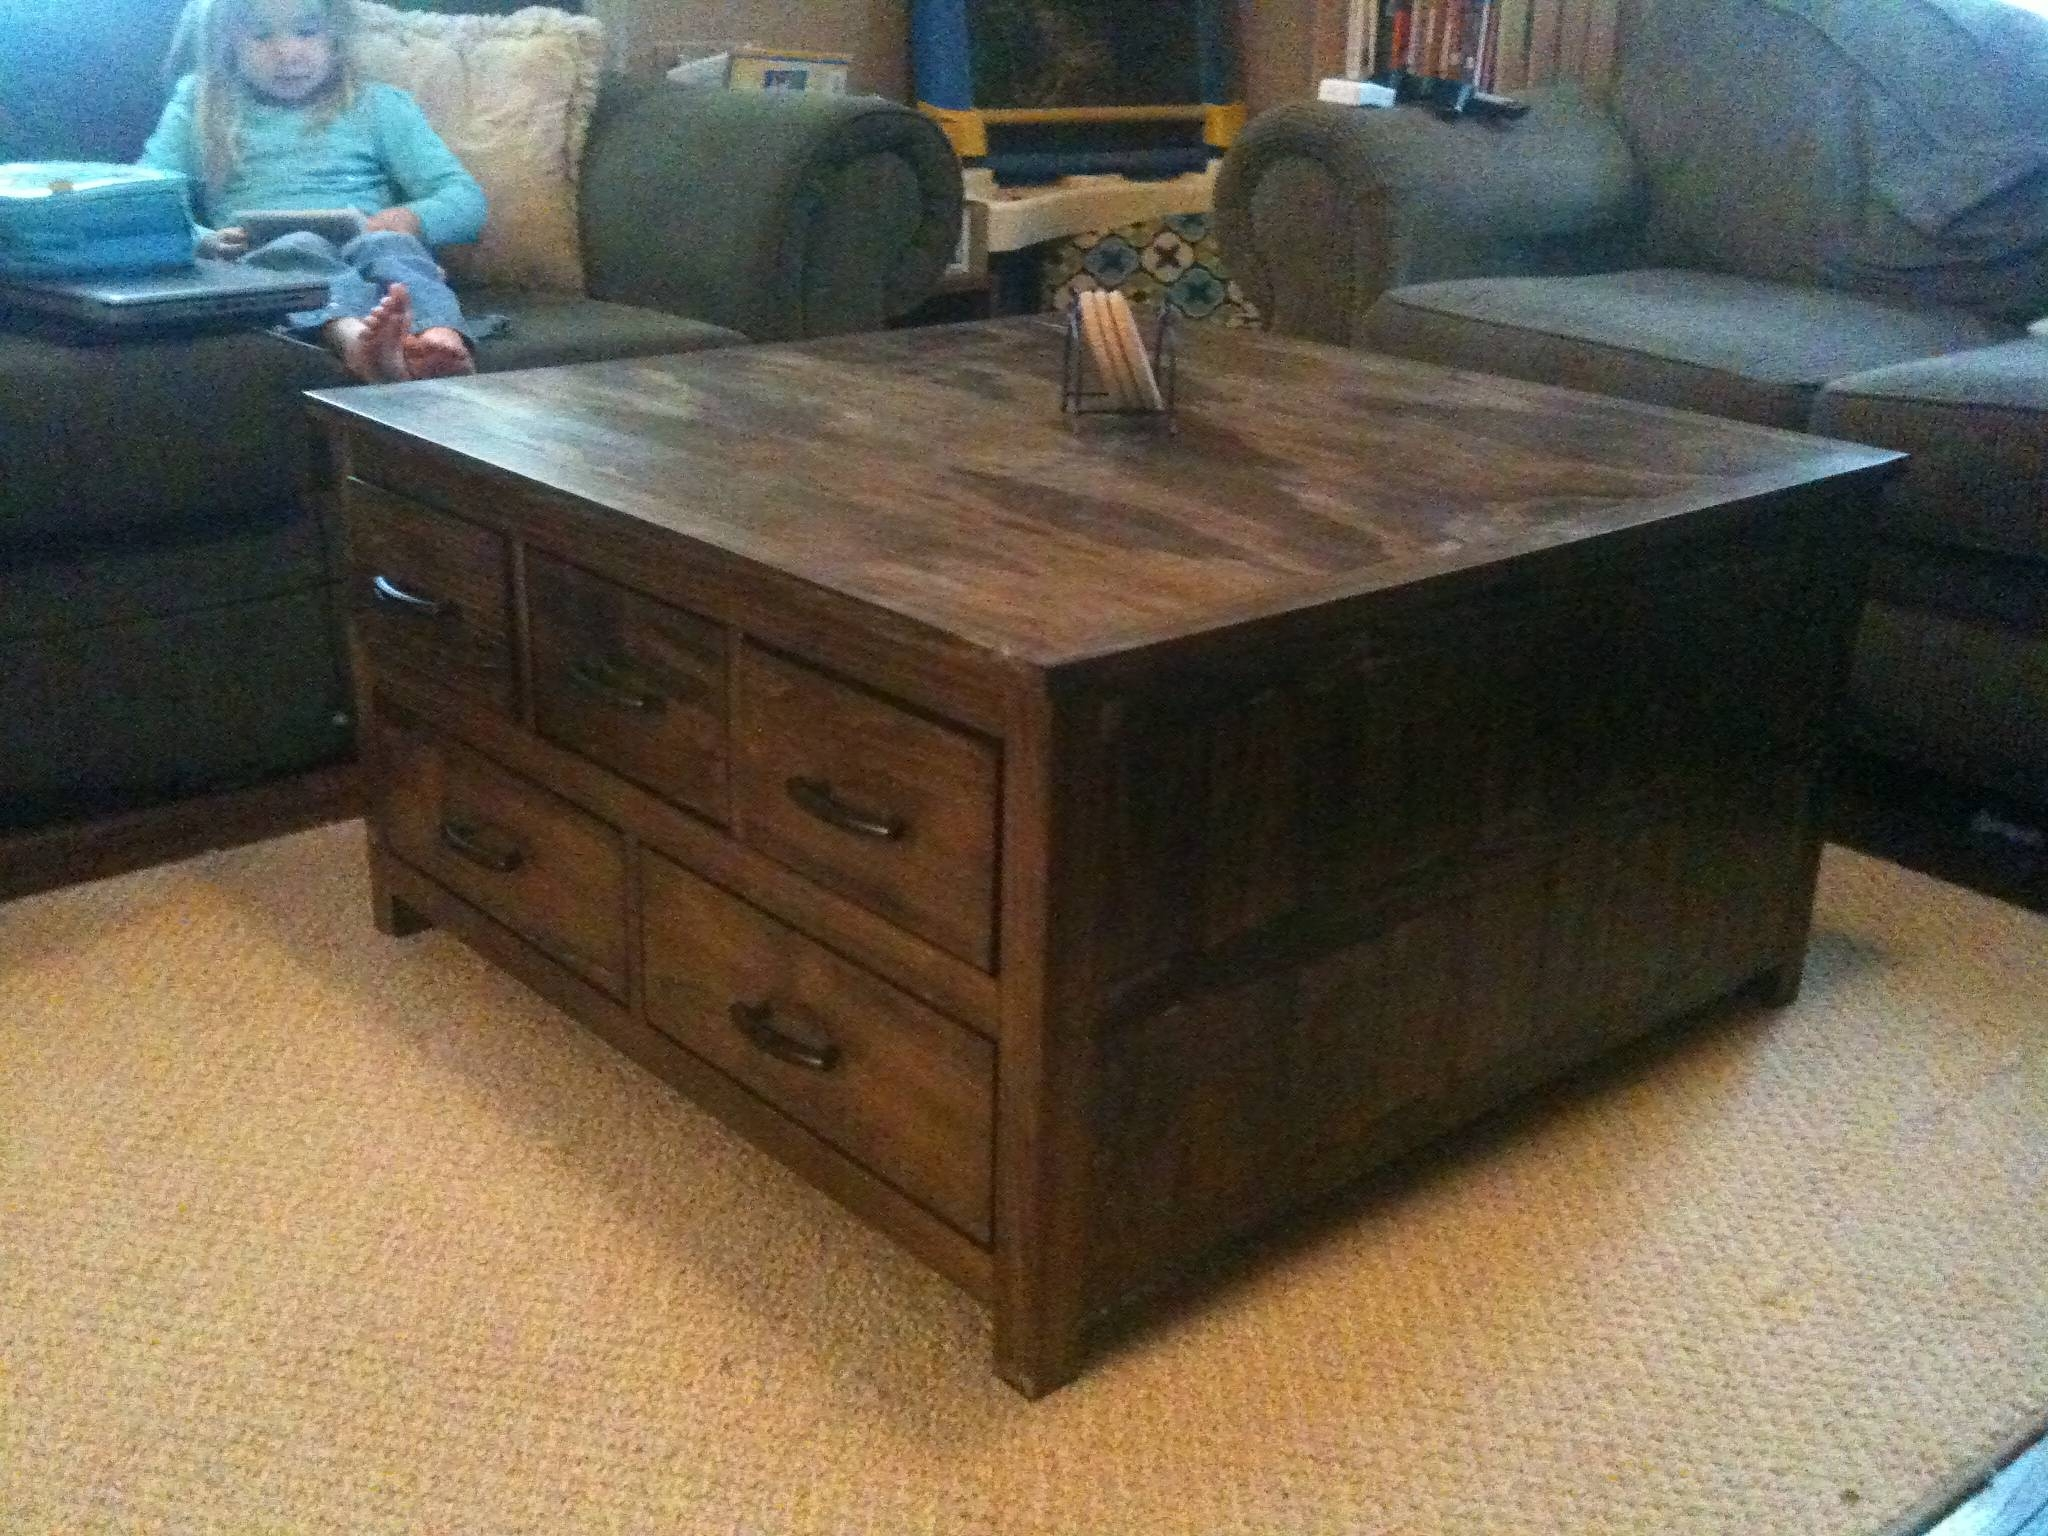 Orly Oak Square Coffee Table With Drawers | Coffee Tables Decoration regarding Glass Square Coffee Tables (Image 23 of 30)